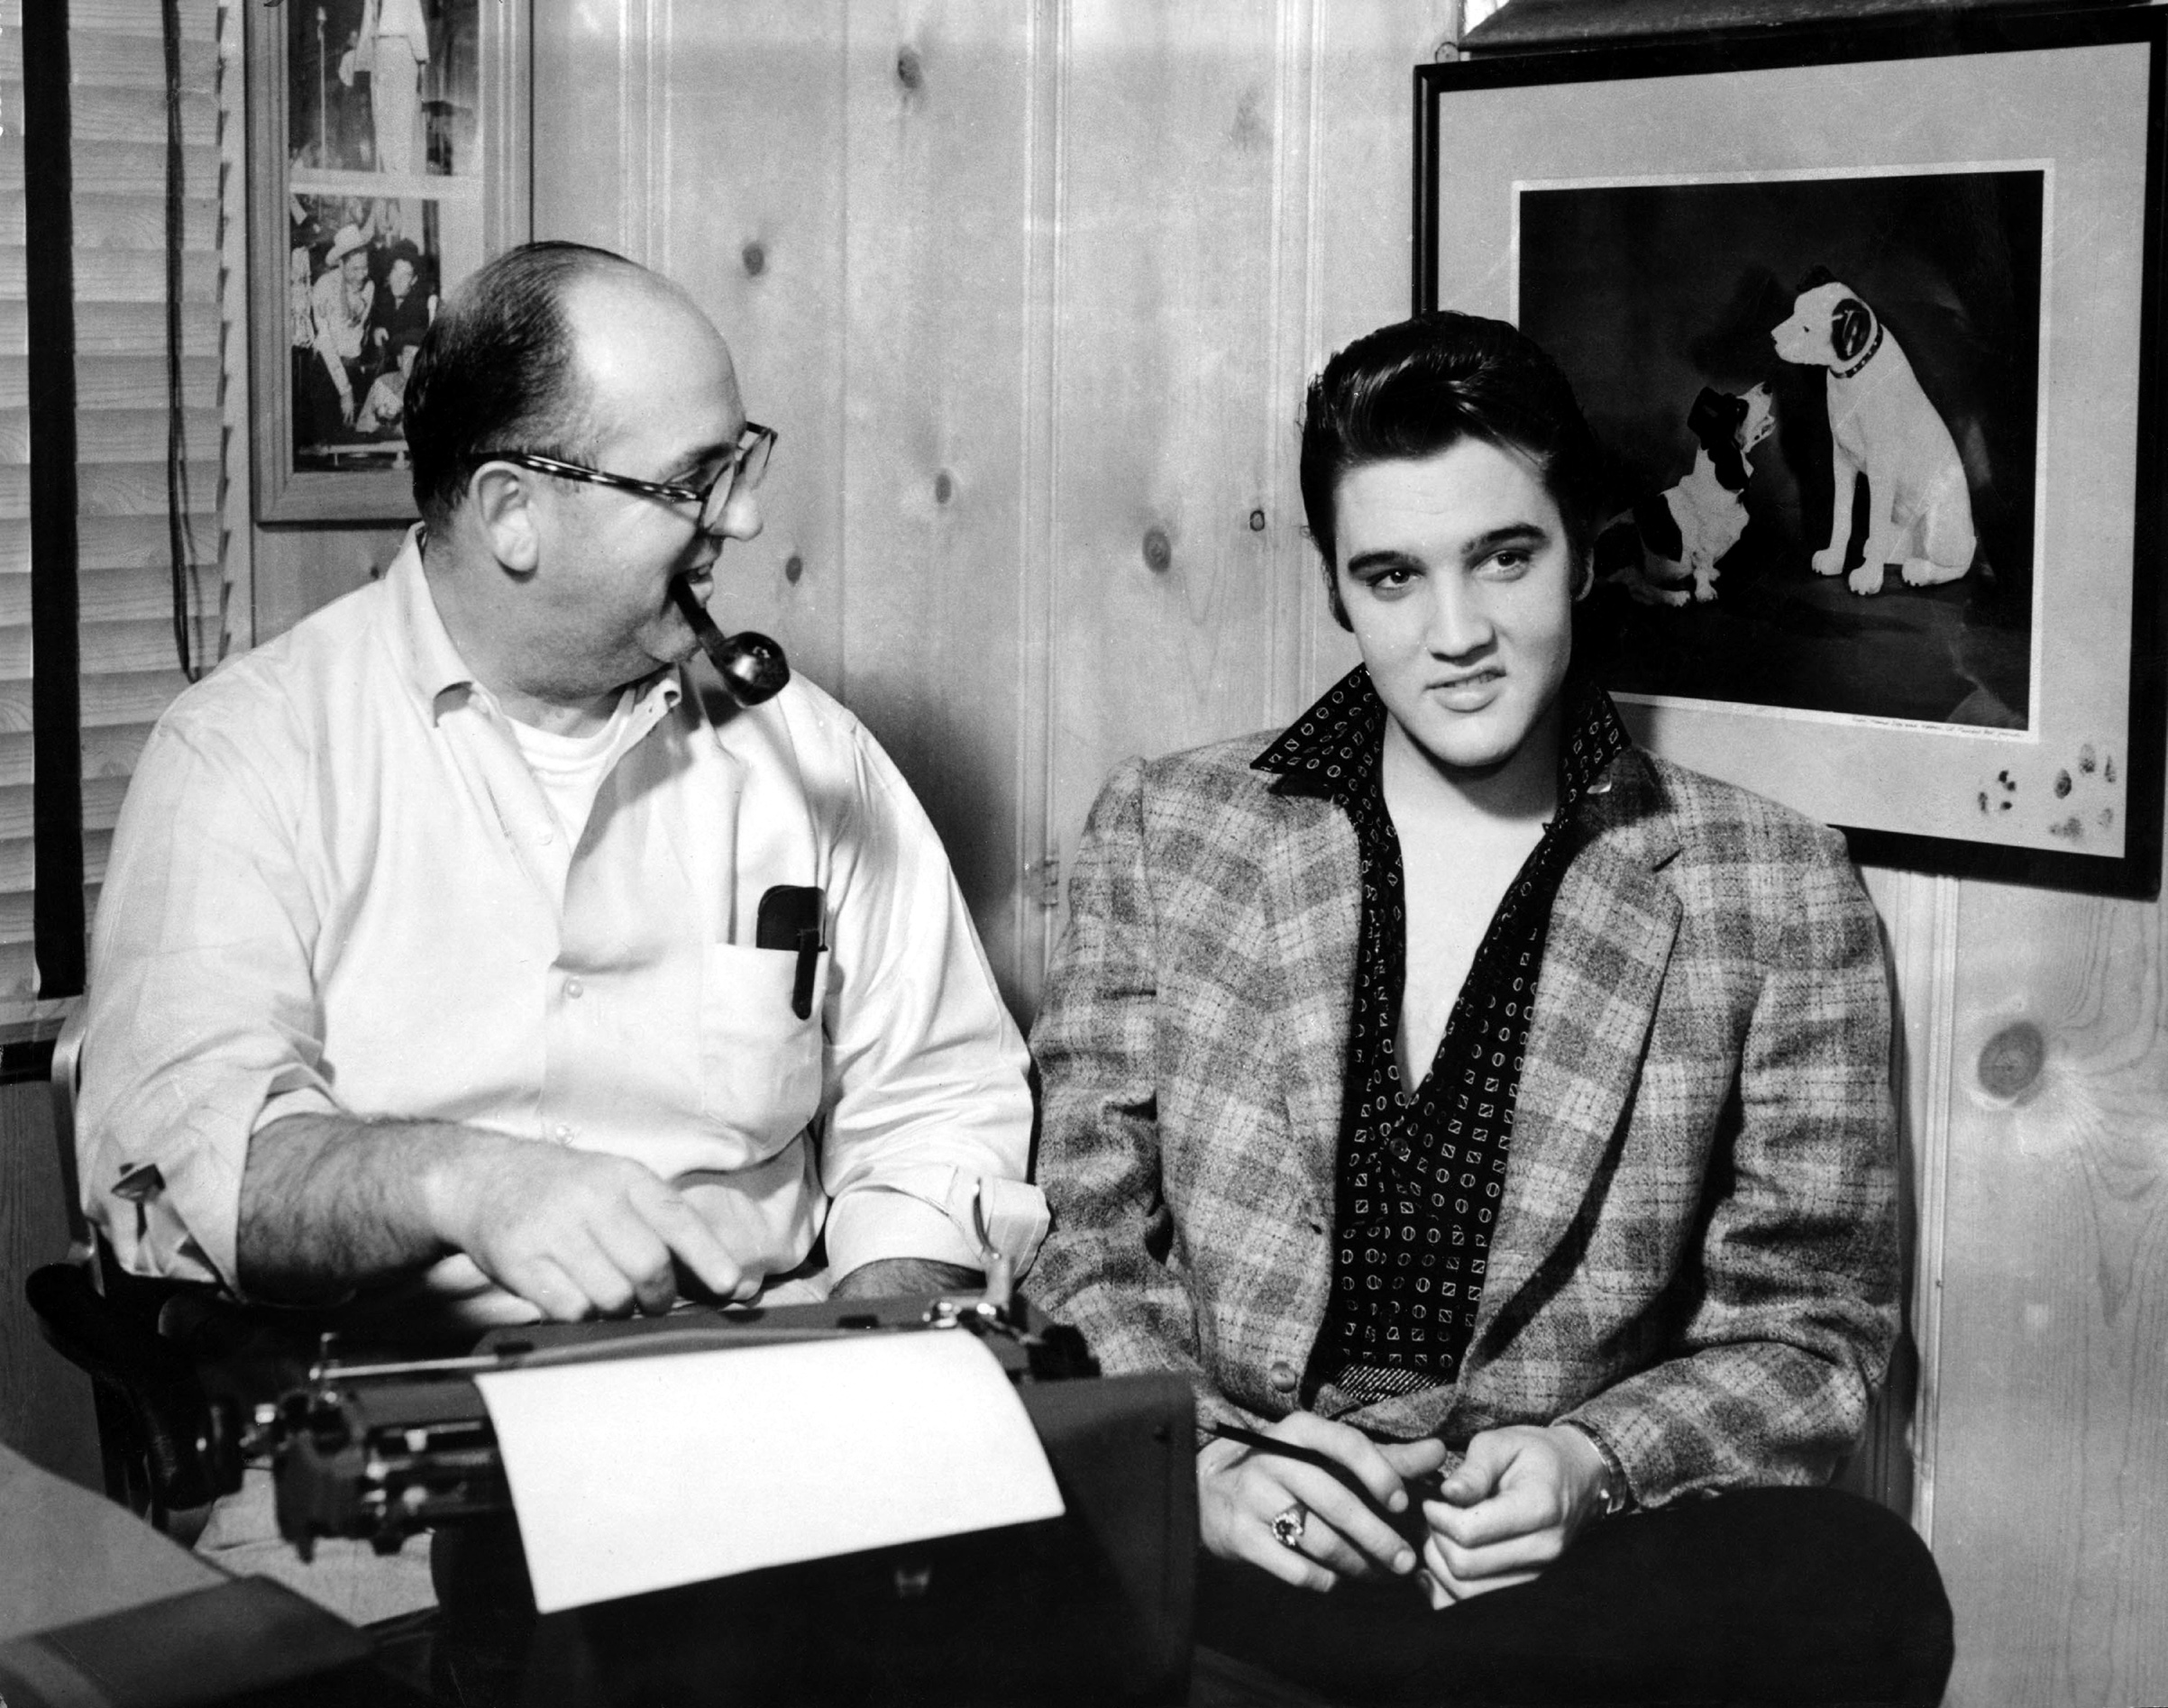 Elvis and his manager Colonel Tom Parker sit at a typewriter in front of the a picture of the RCA Victor Dog in circa 1956 in Memphis, Tenn.